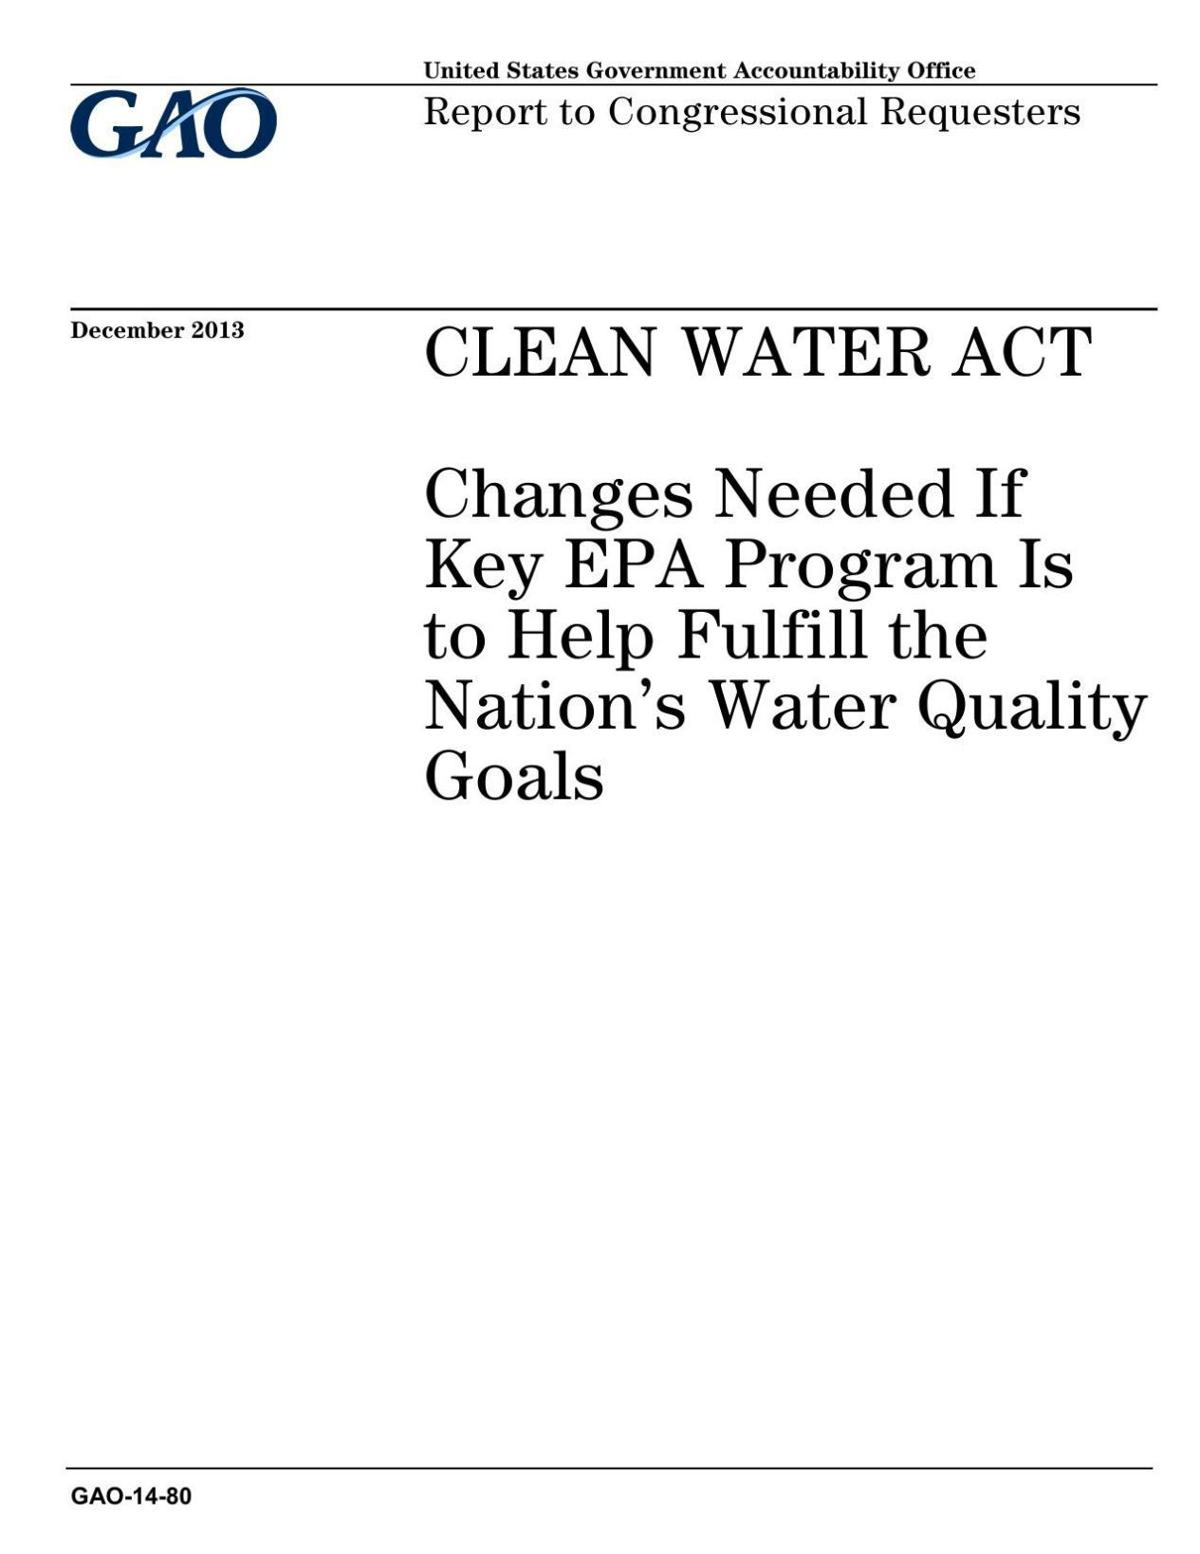 GAO on absence of controls over farm pollution